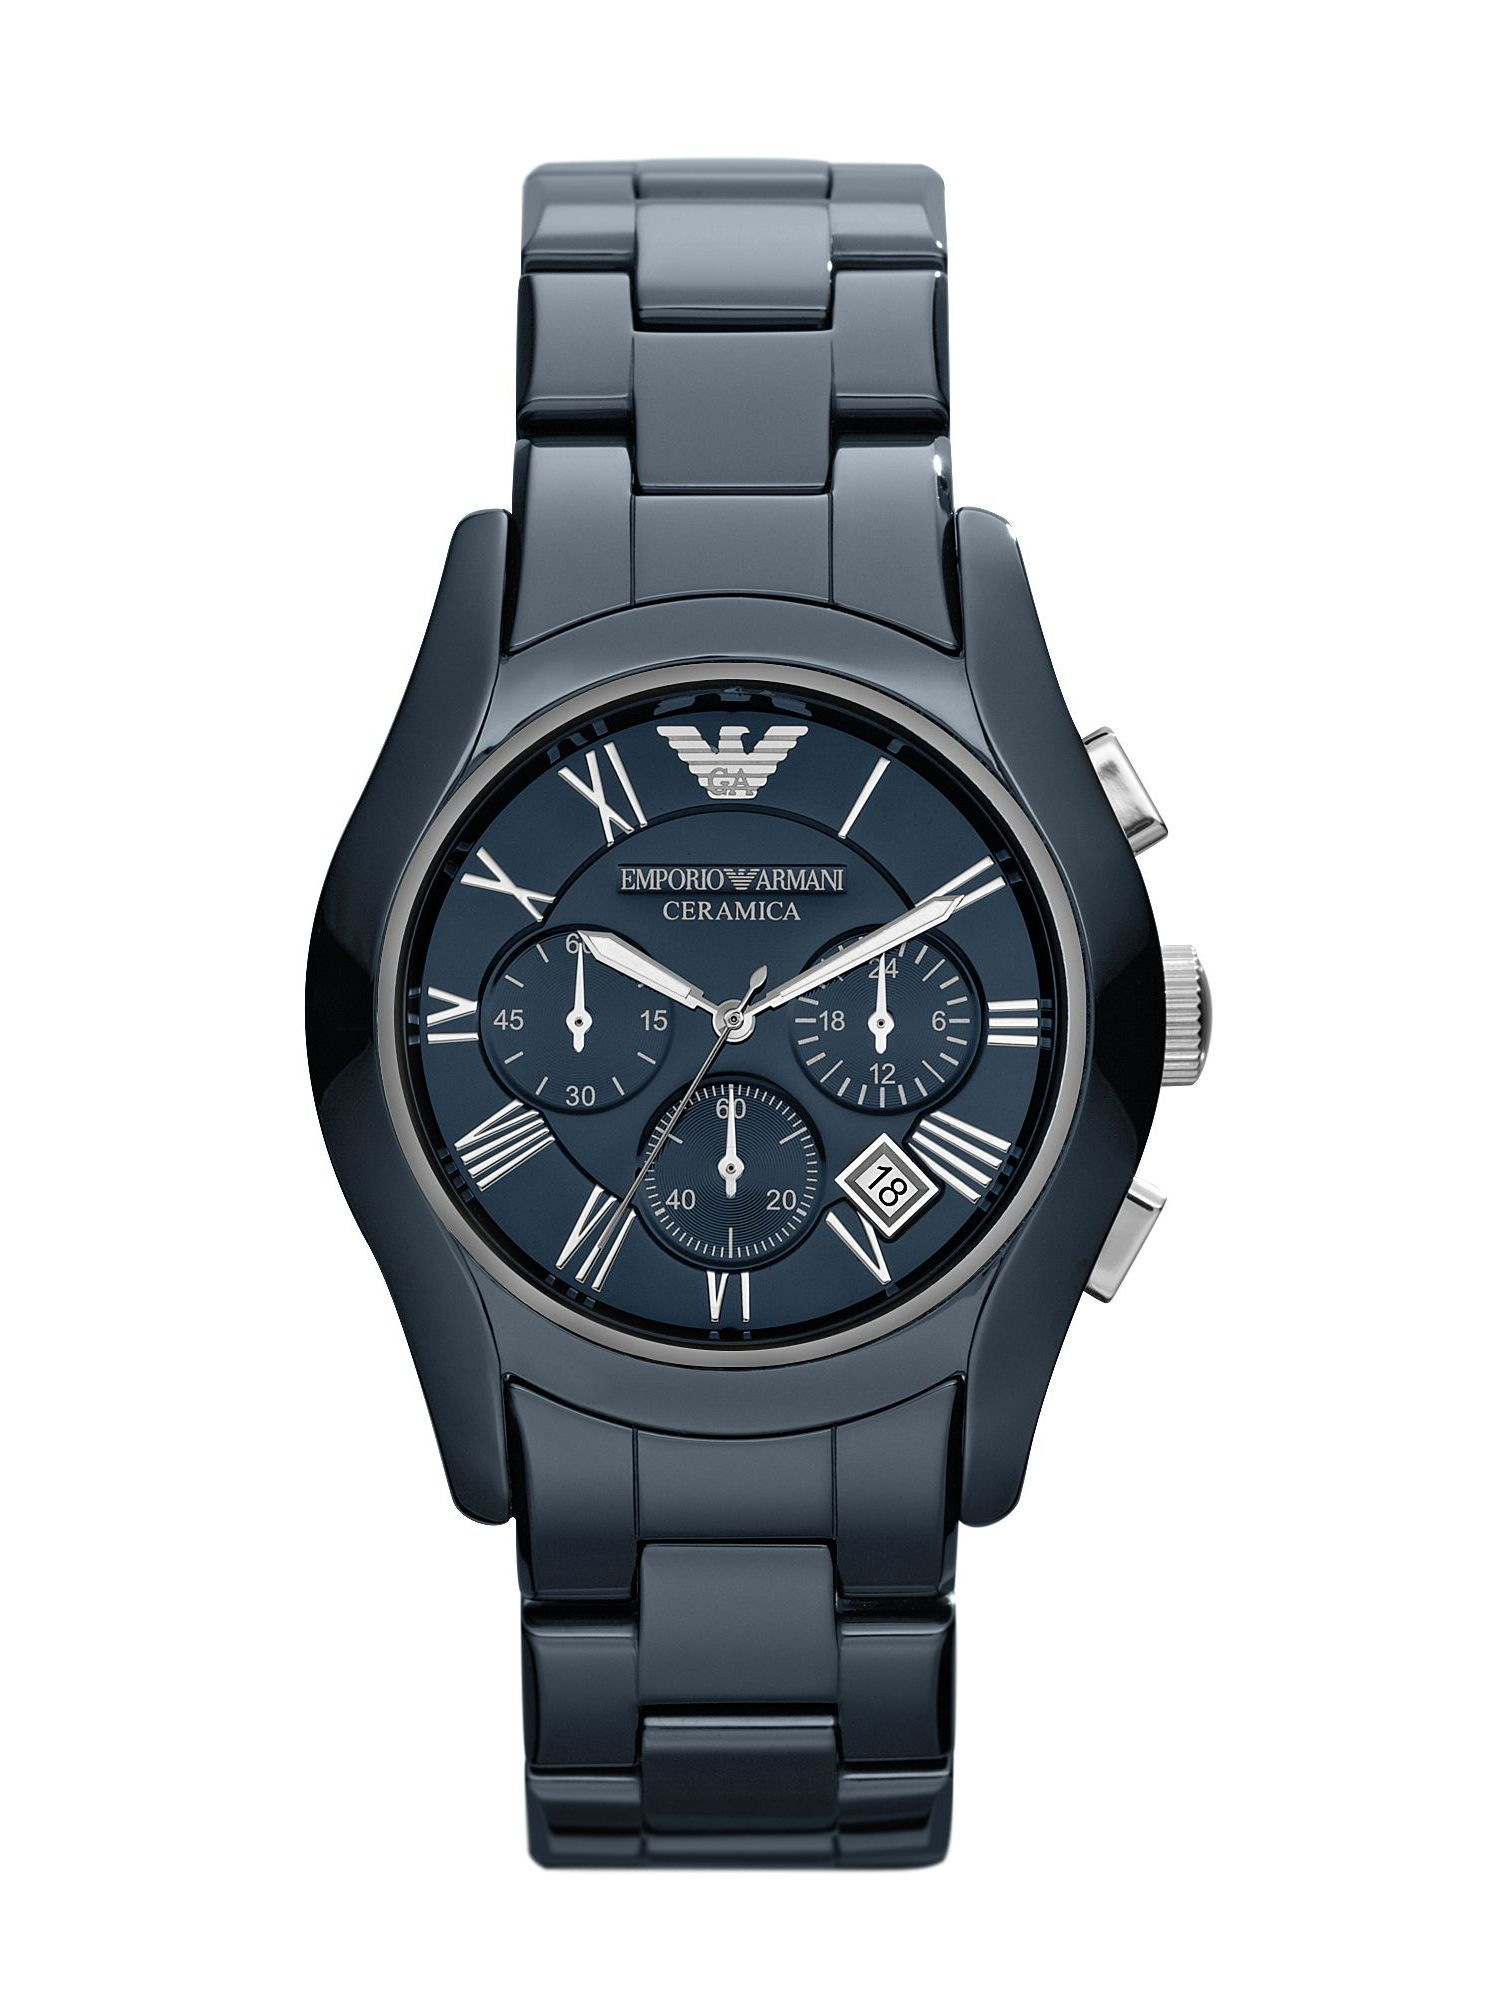 emporio armani ceramica watch price поэтому аромат